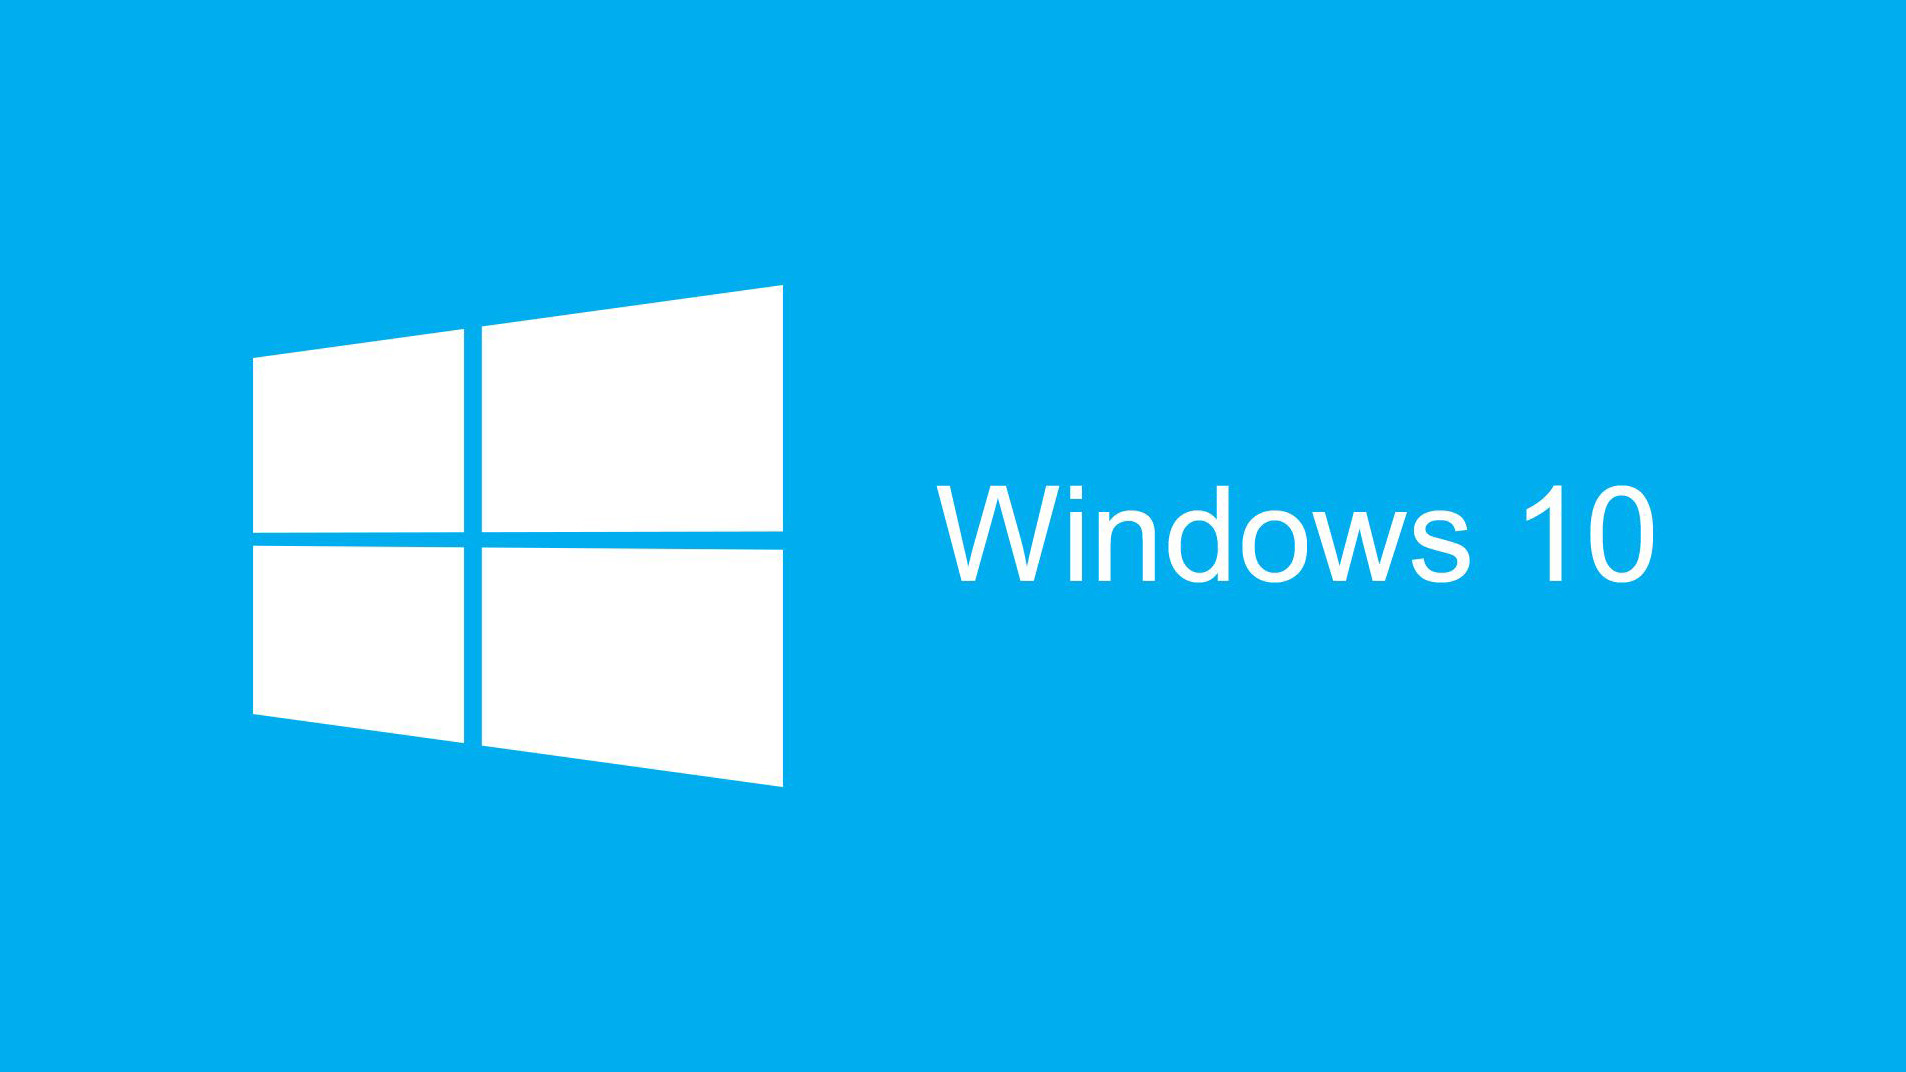 Is Windows 10 Pro better than Windows 10 Home?